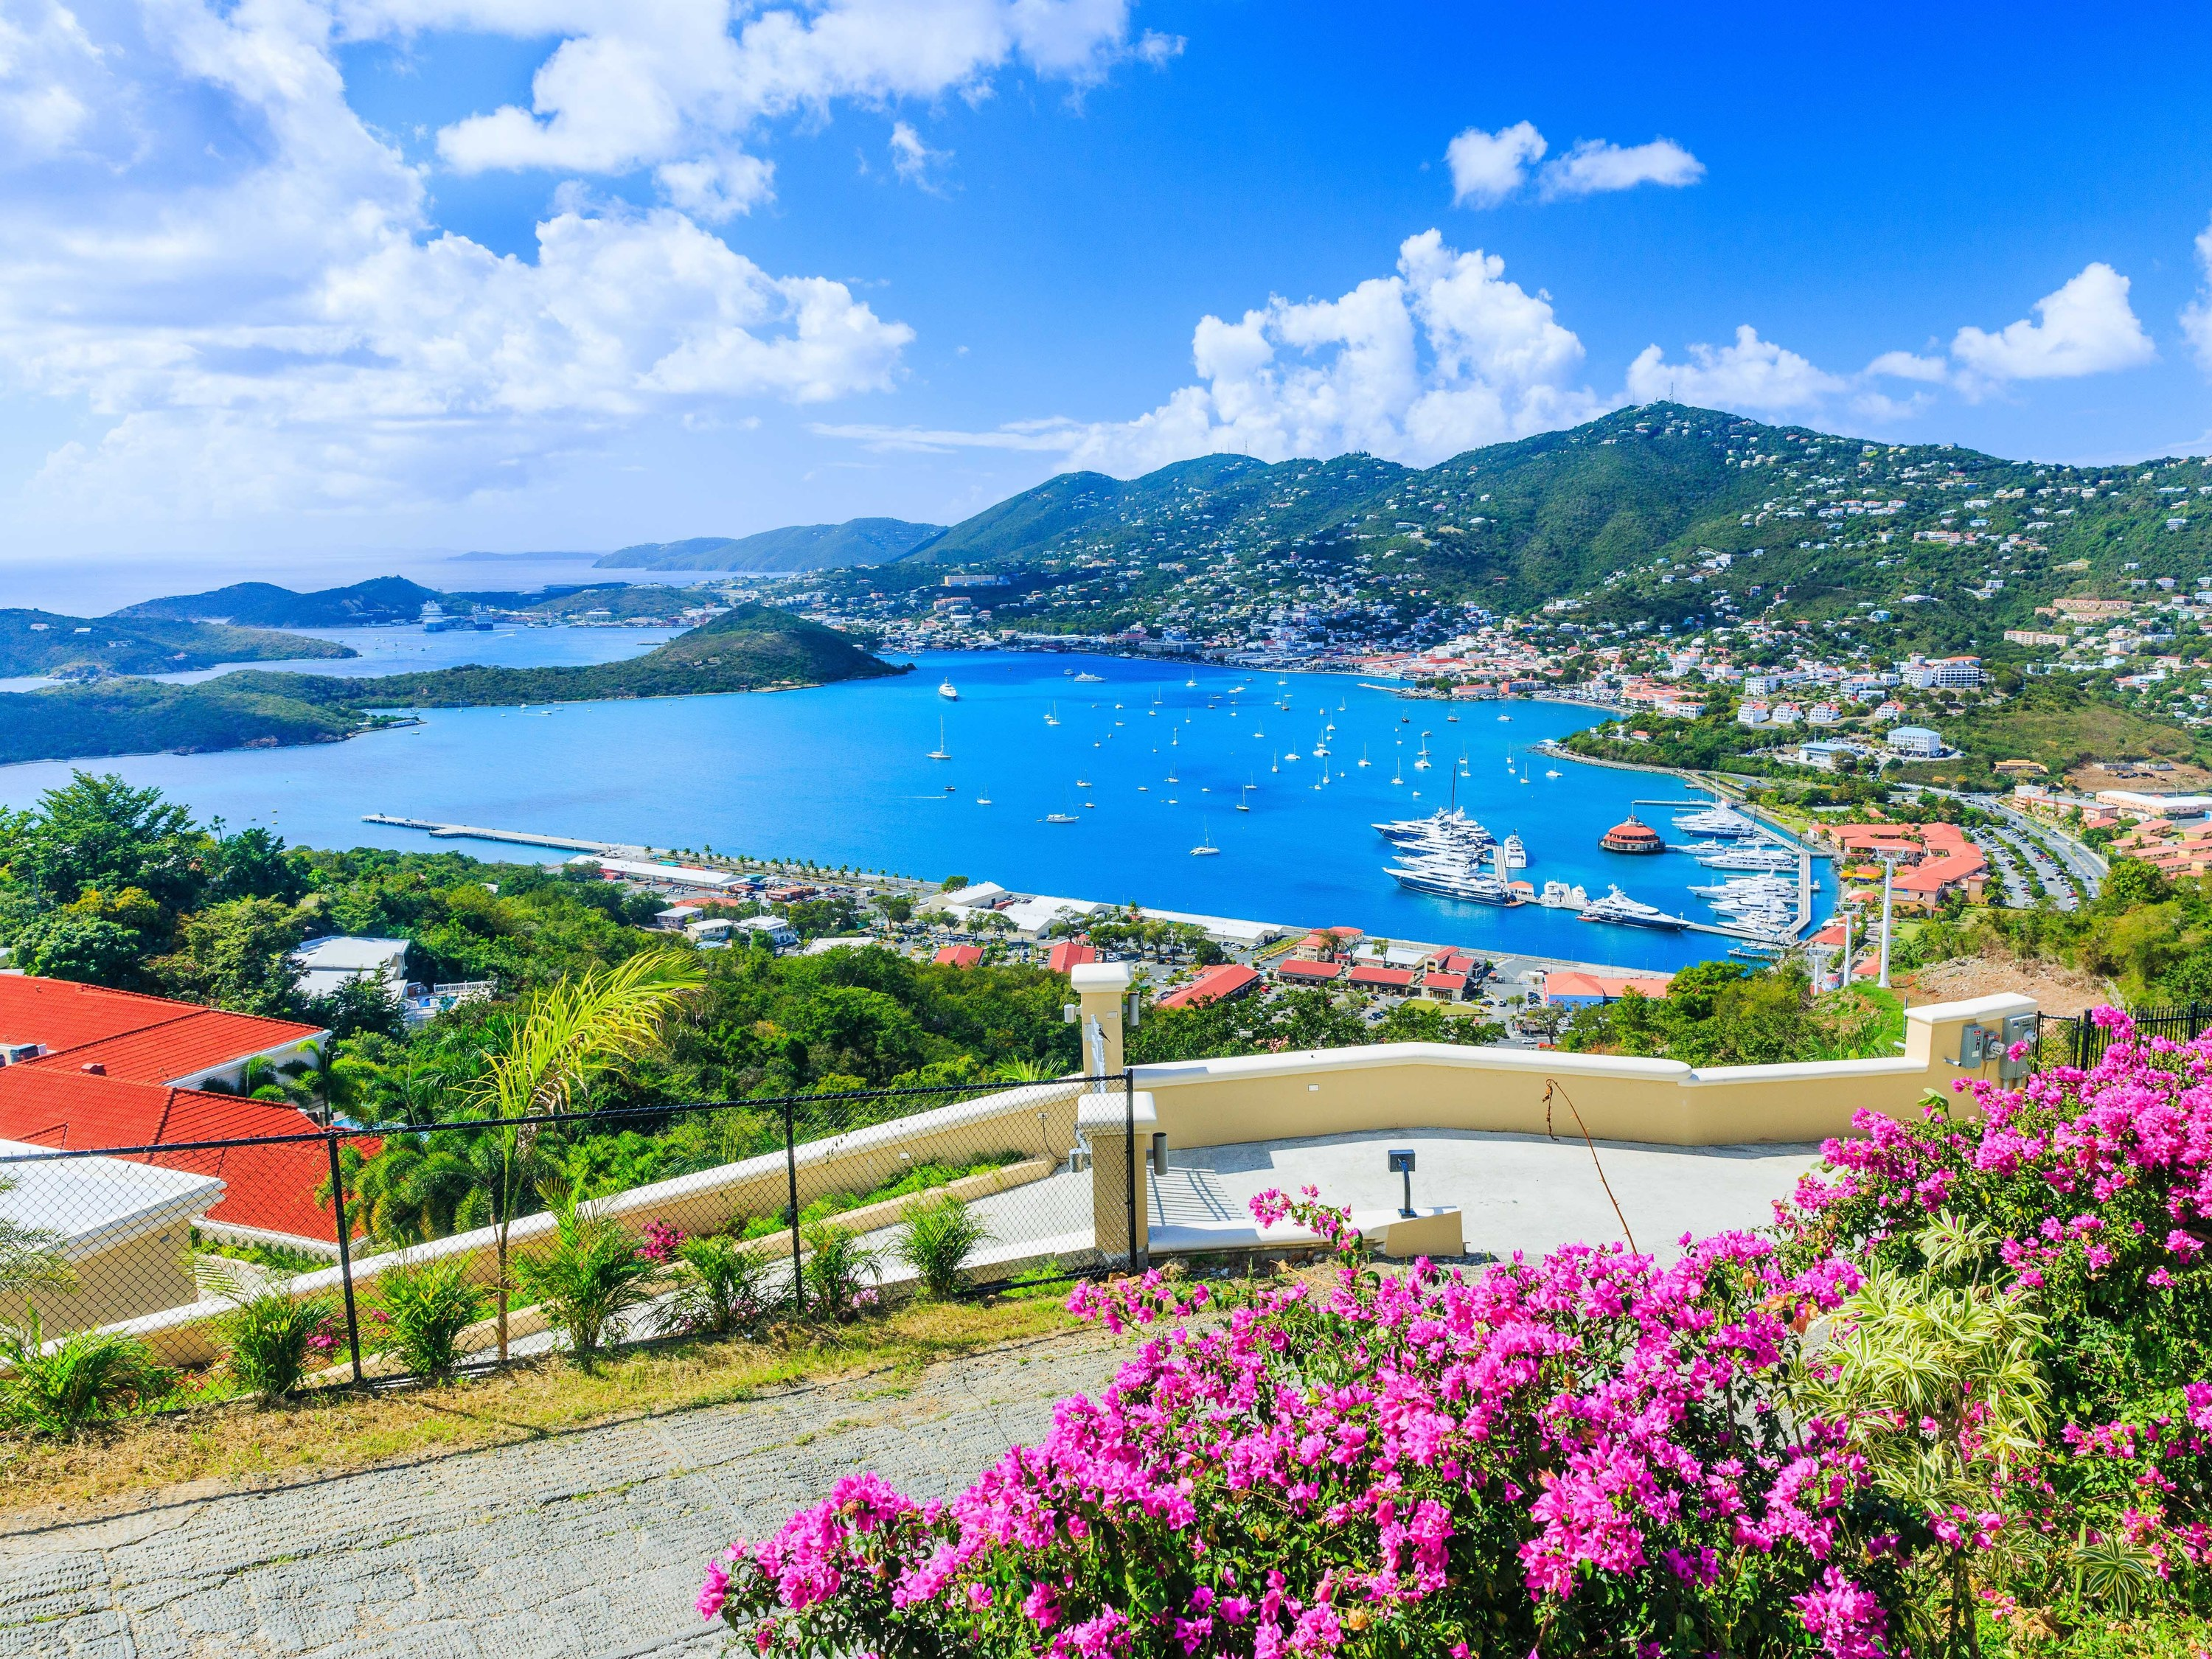 The US Virgin Islands will reopen to tourists on June 1